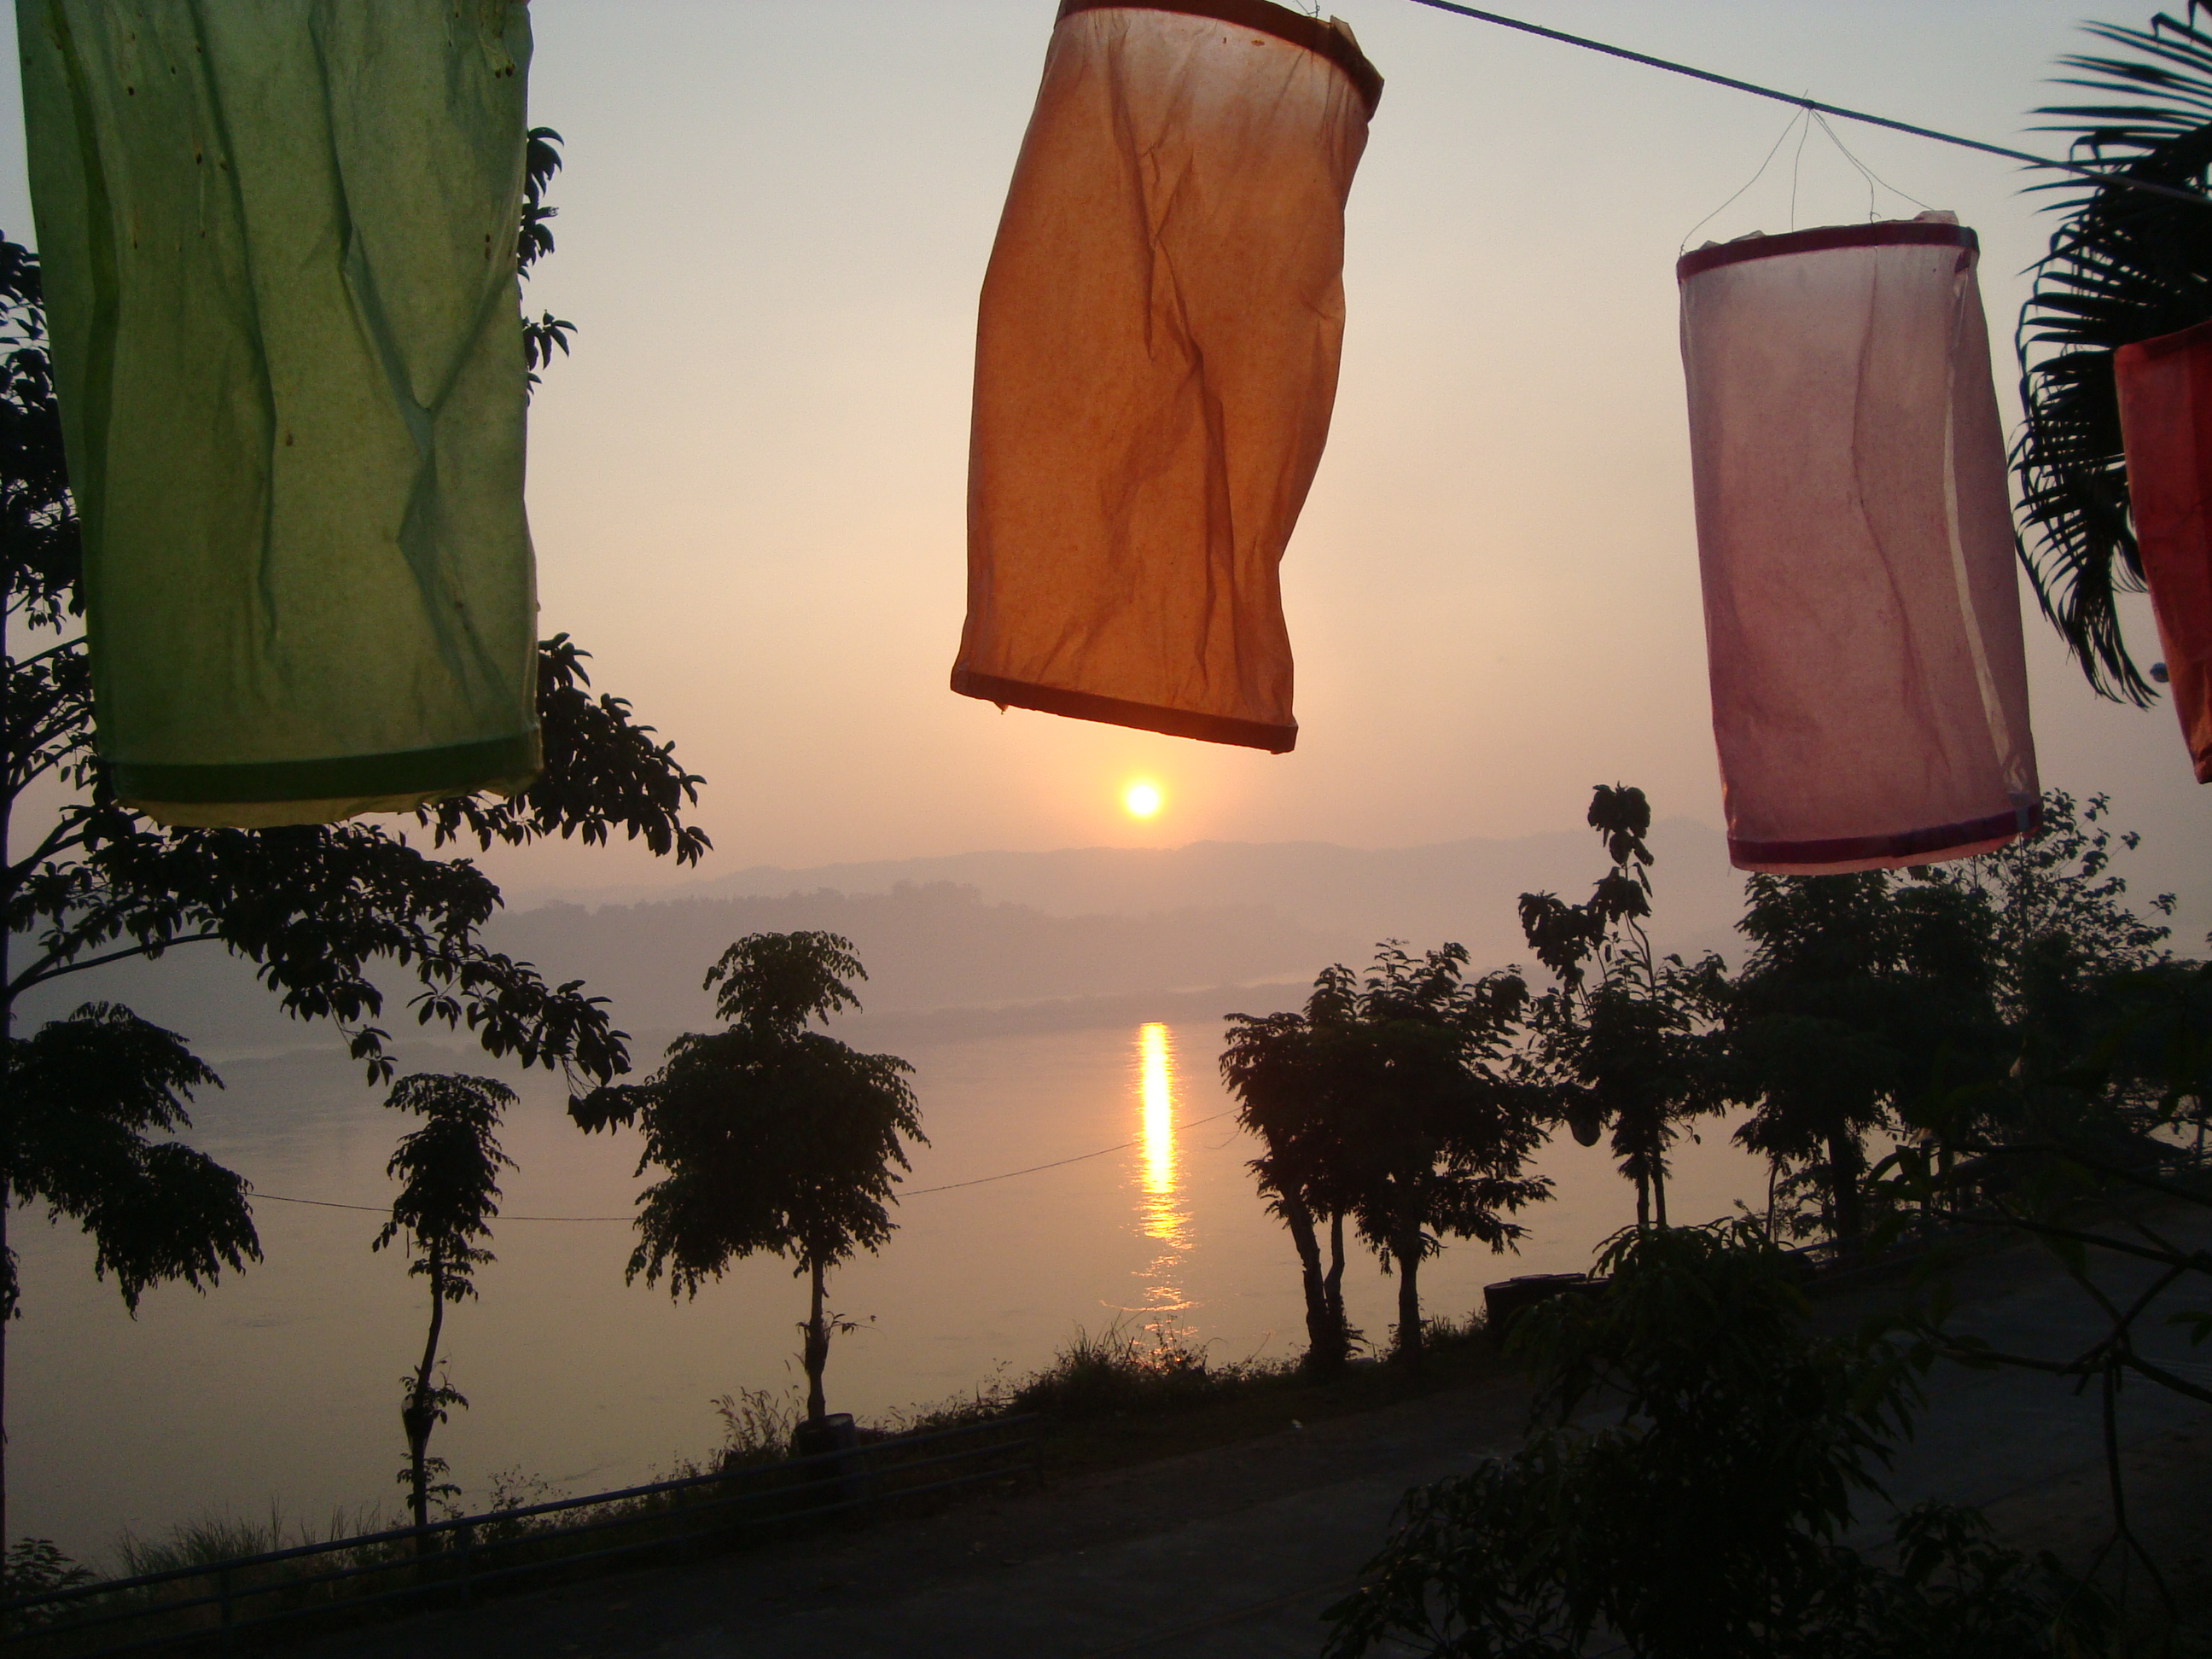 Sunrise on the Mekong River (from Thailand). Also our first glimpse of Laos across the river.